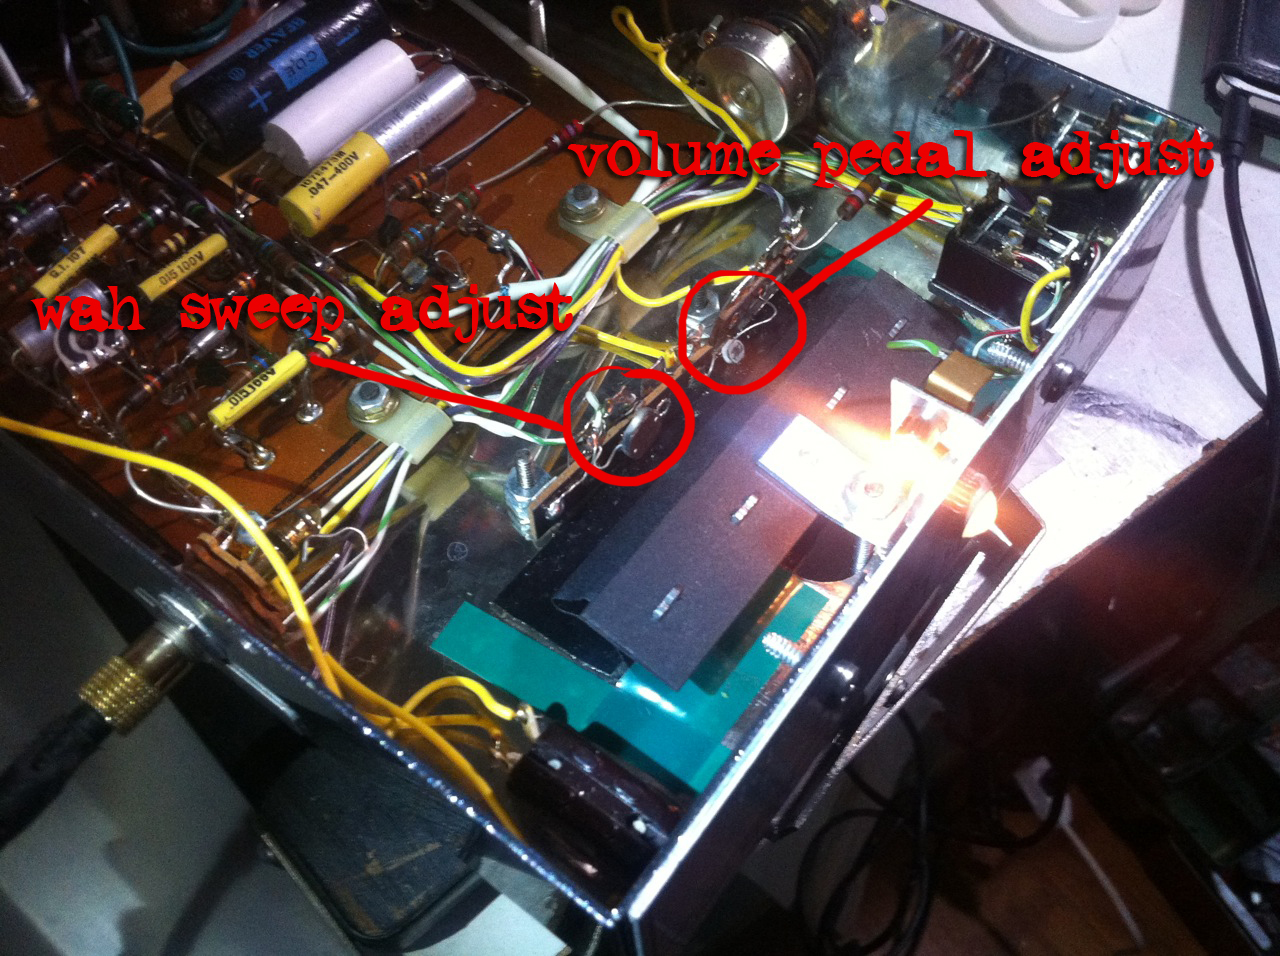 Mondo Morley Medicale Rwv Rotating Wah Doktor Ross Sewage Pedal Circuit While I Was In There Decided To Conduct A Full Diagnostic The Curtain Shielding Ldr That Controls And Volume Bit Loose